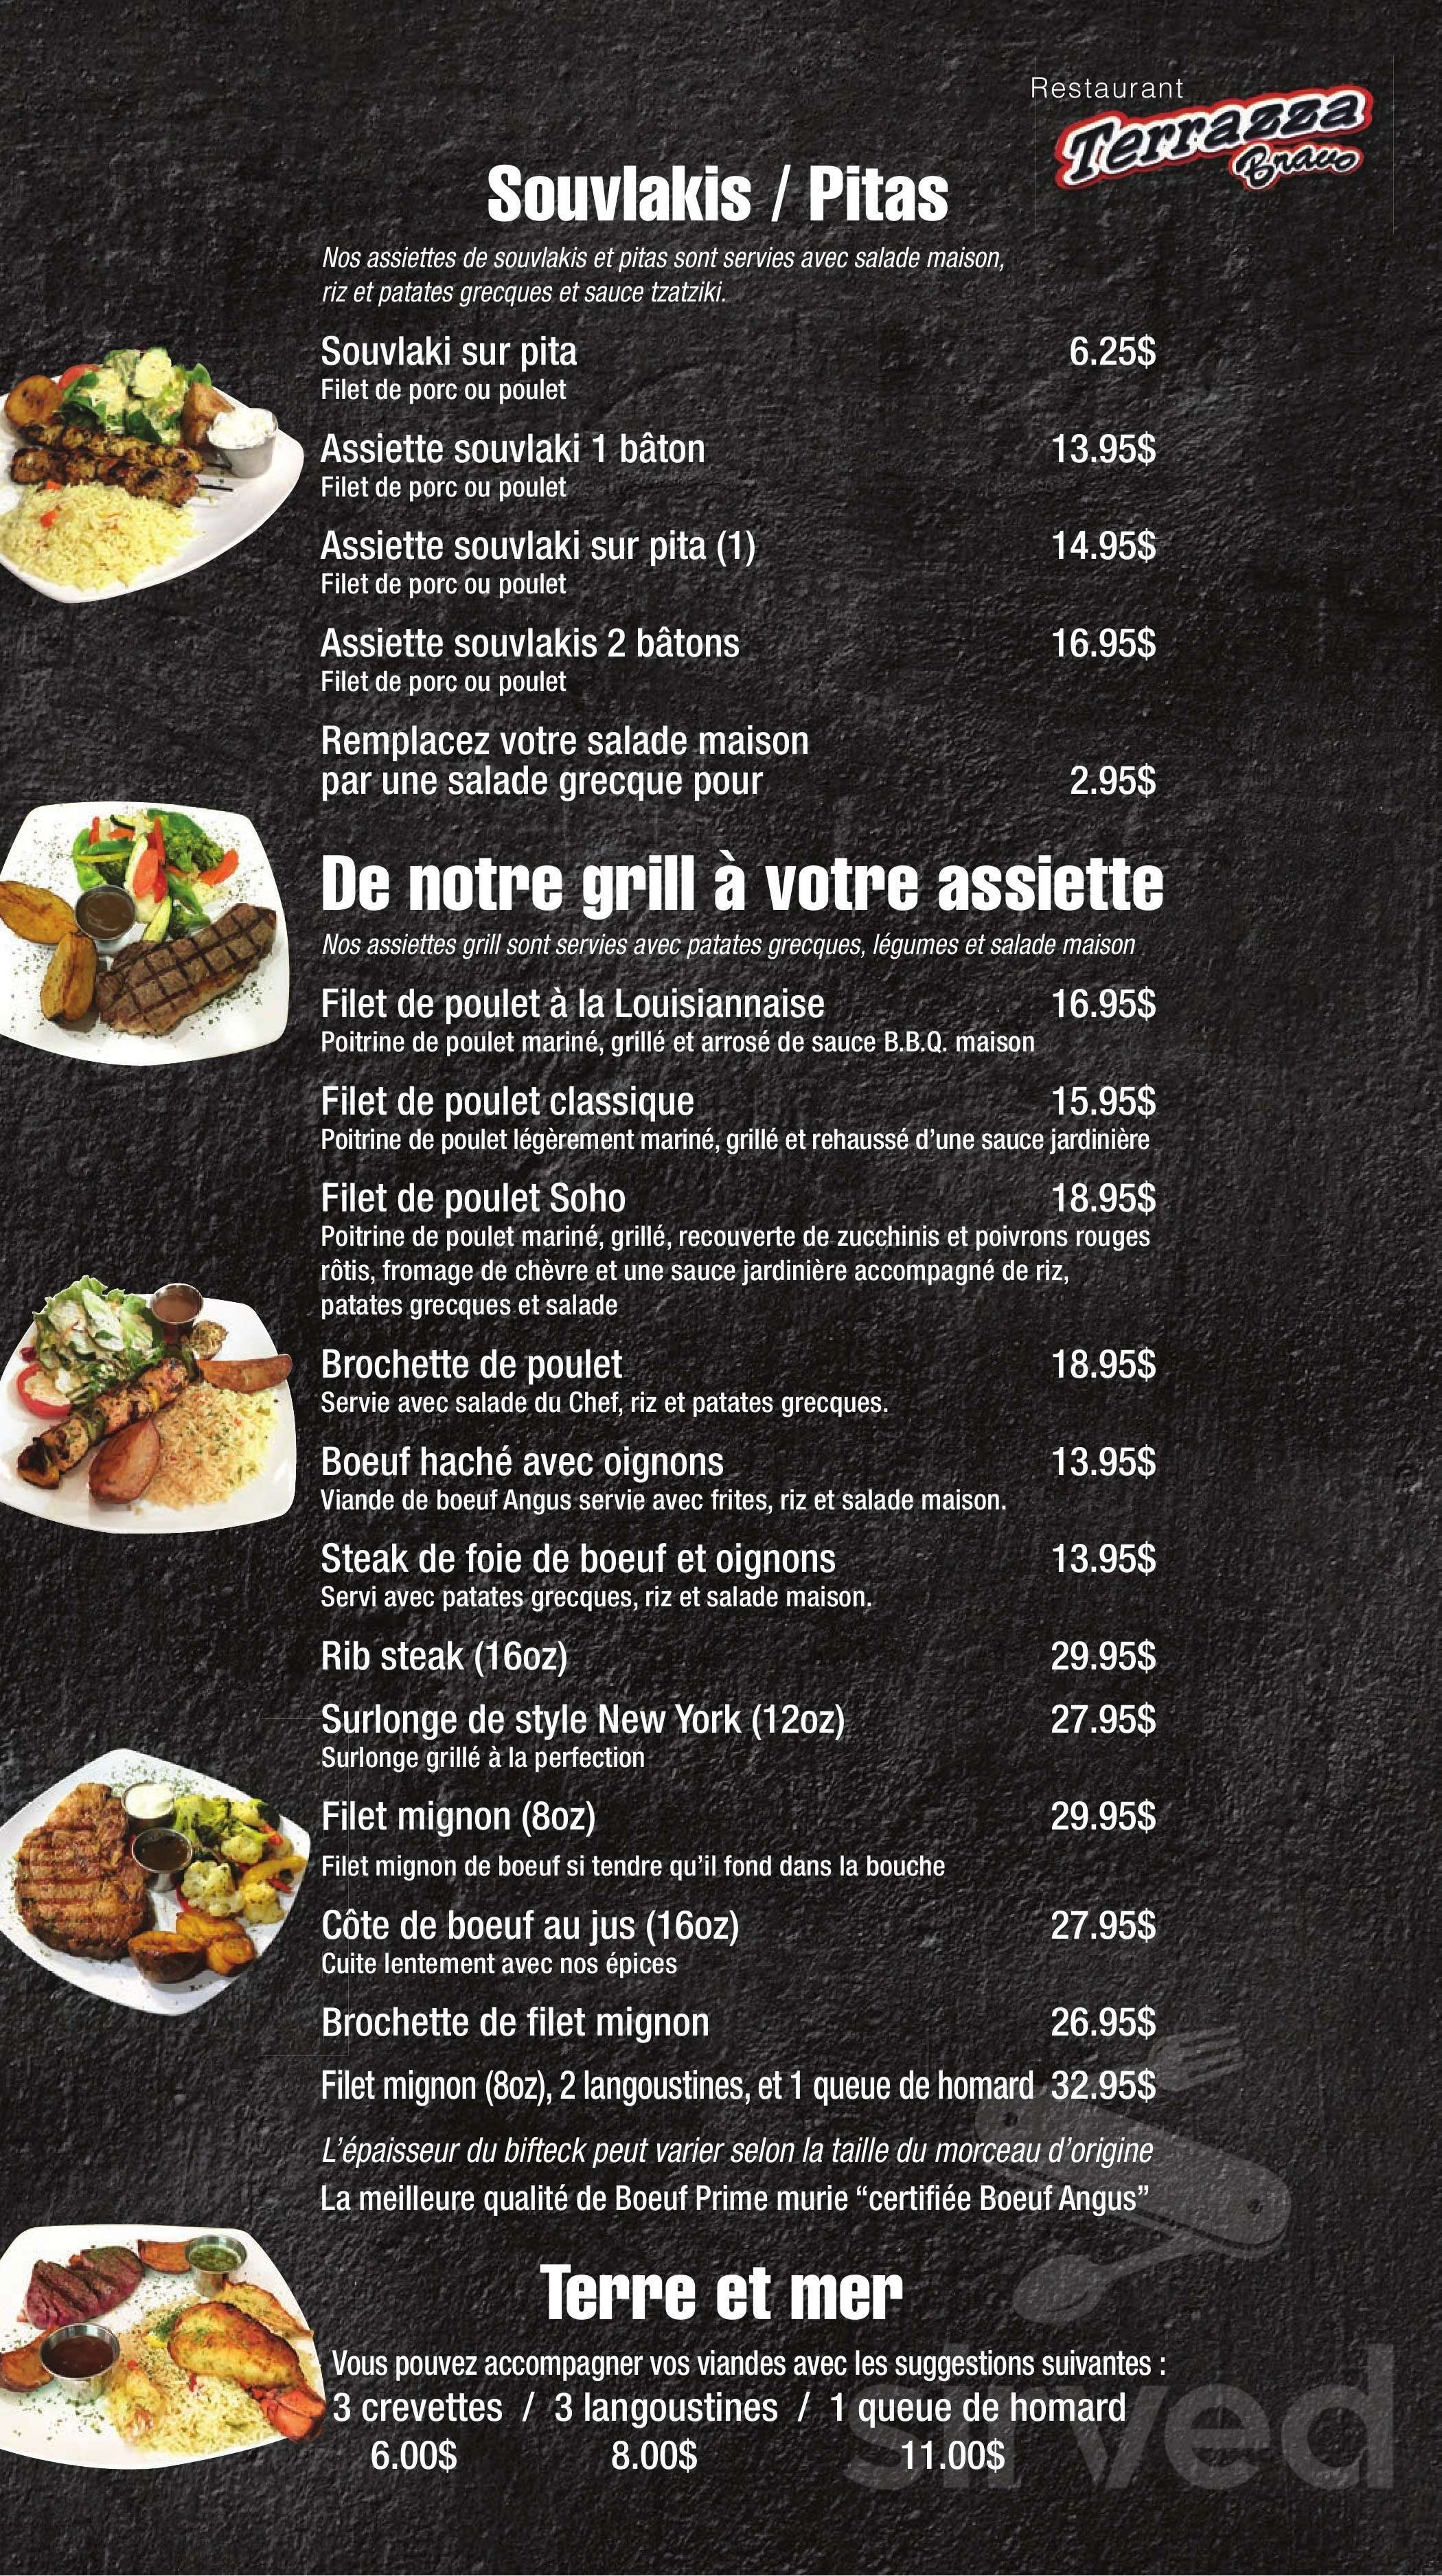 Restaurant Terrazza Bravo La Menu In Saint Charles